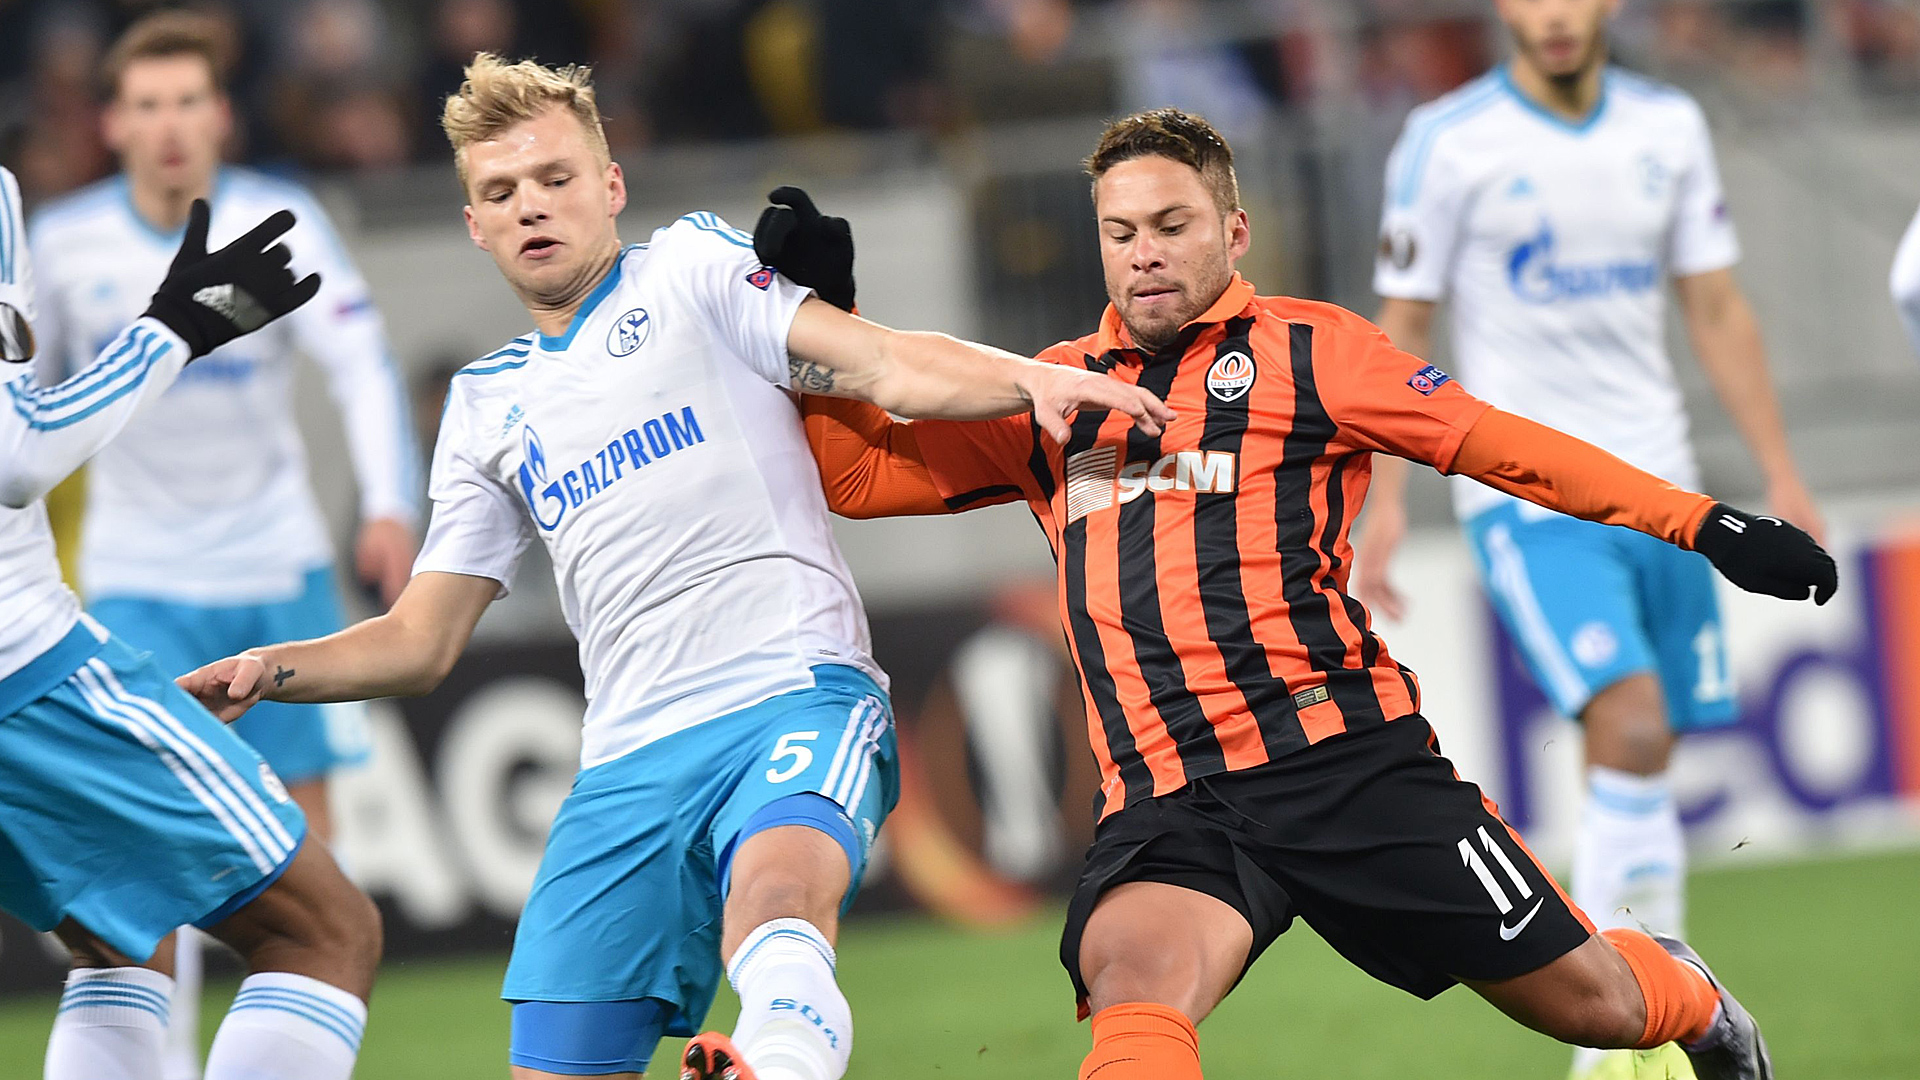 Video: Shakhtar Donetsk vs Schalke 04